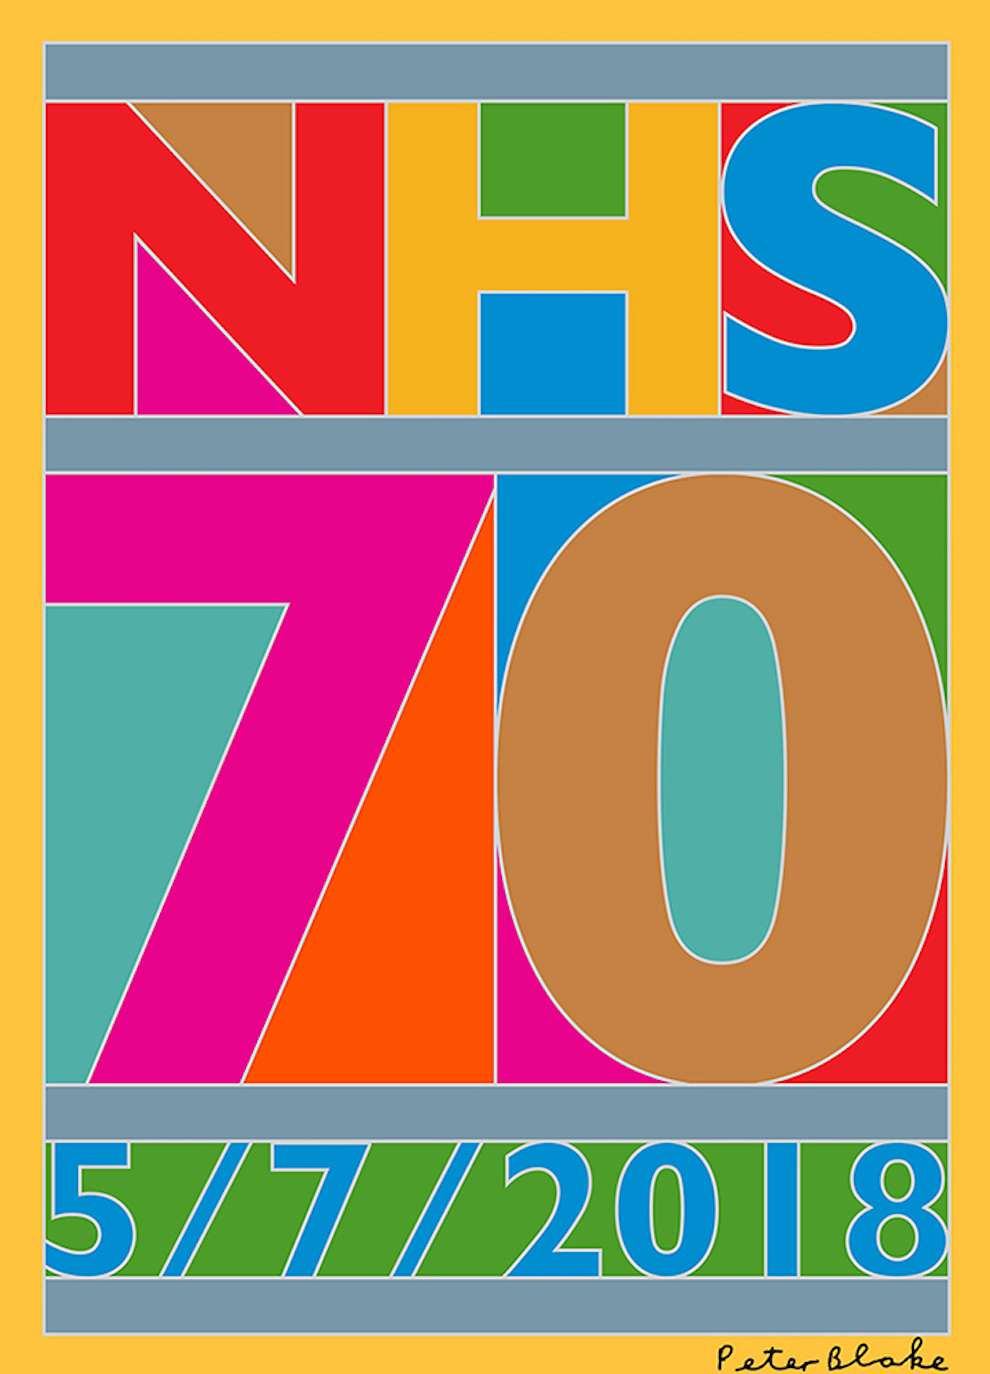 Sir Peter Blake, Bold and vibrant digital design for the 70 years anniversary of the NHS.